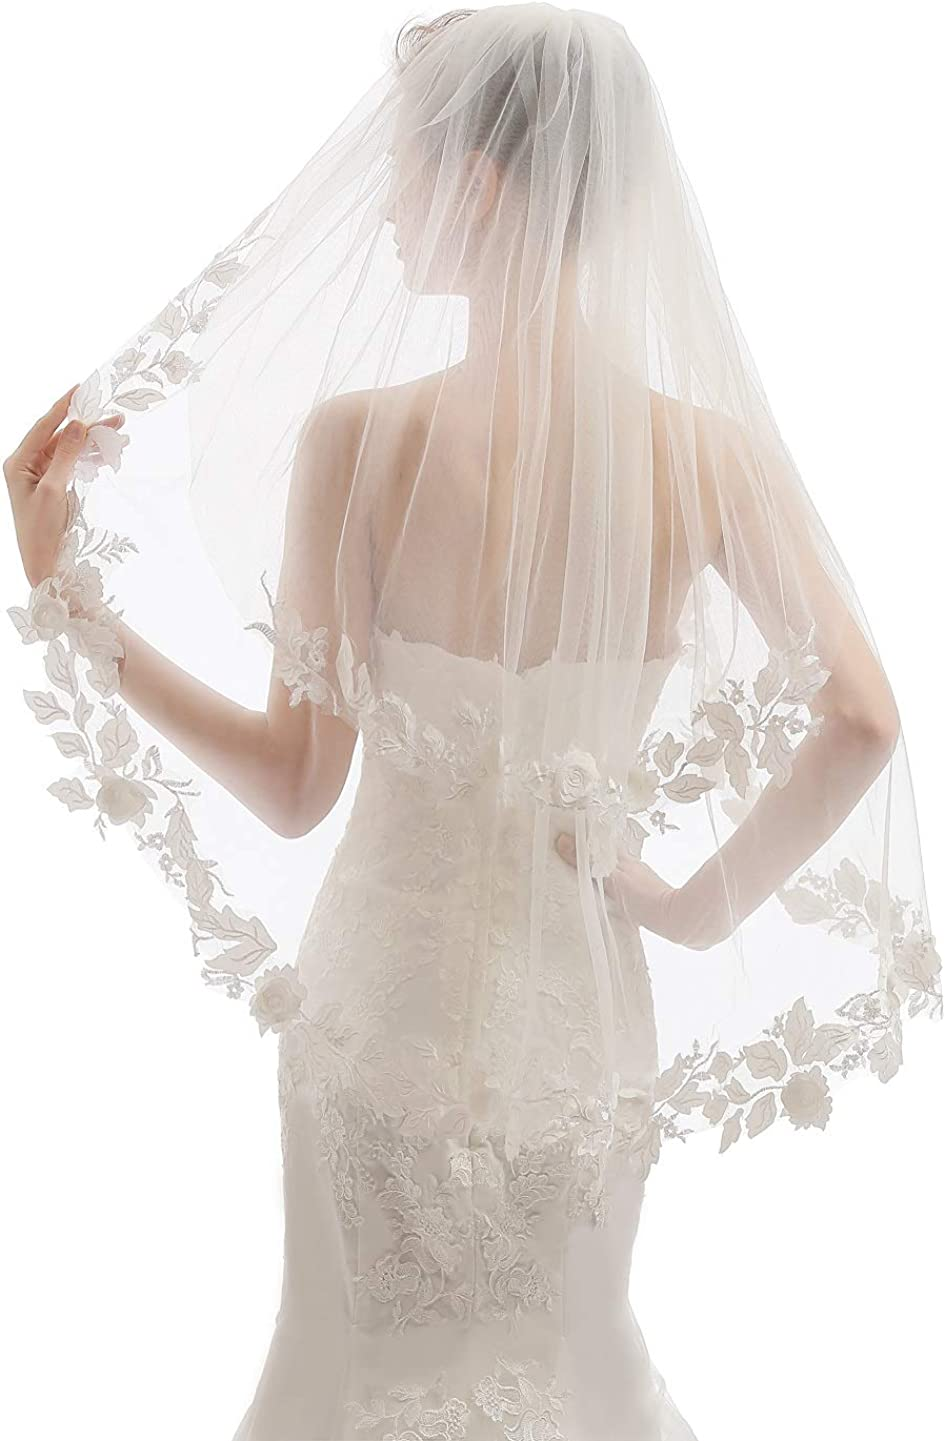 Elawbty Womens 2 Tier Fingertip Length Short Lace Wedding Bridal Veil With Comb X07